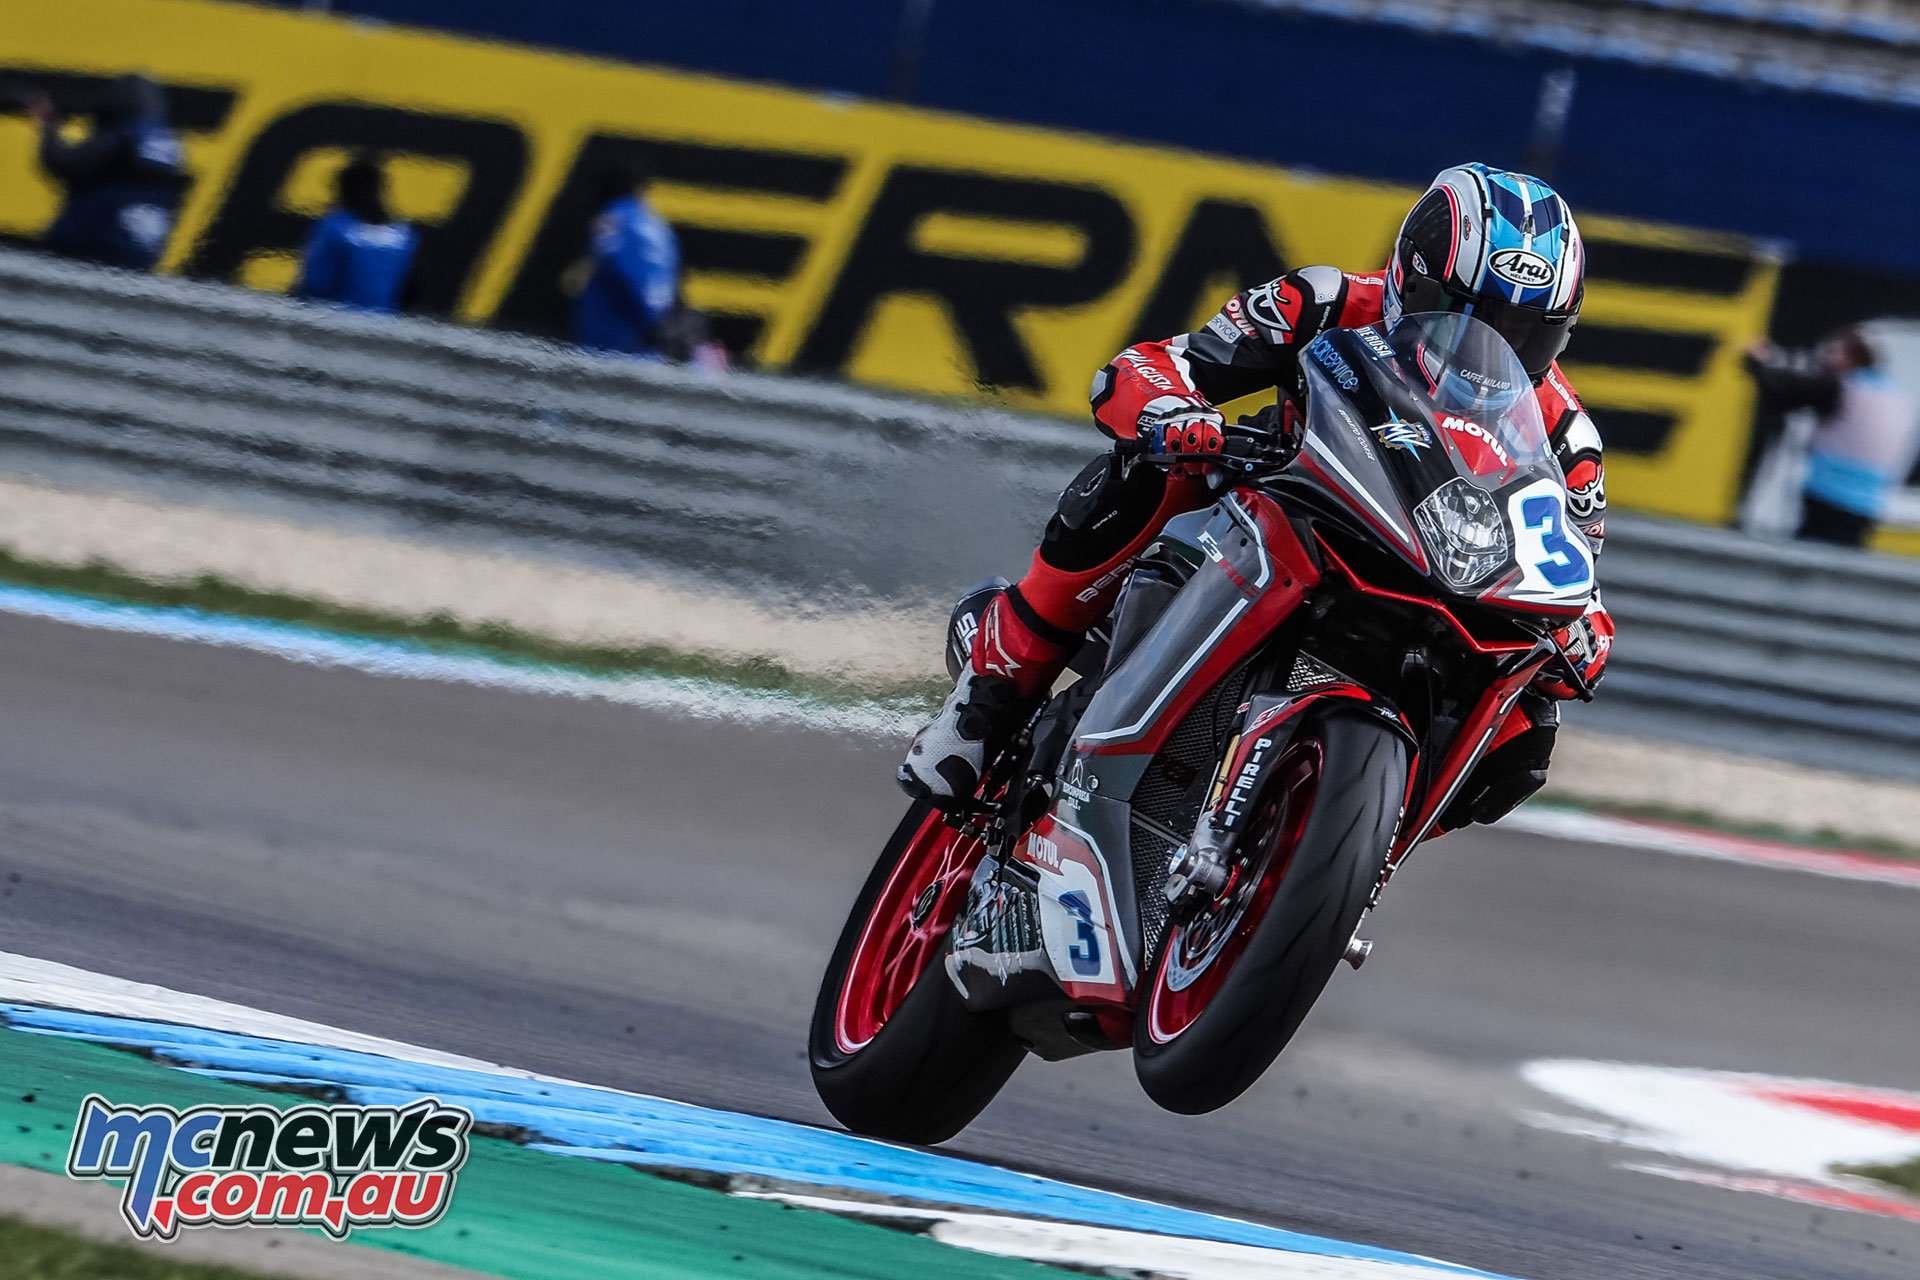 WorldSBK NED WorldSSP Saturday Action DeRosa